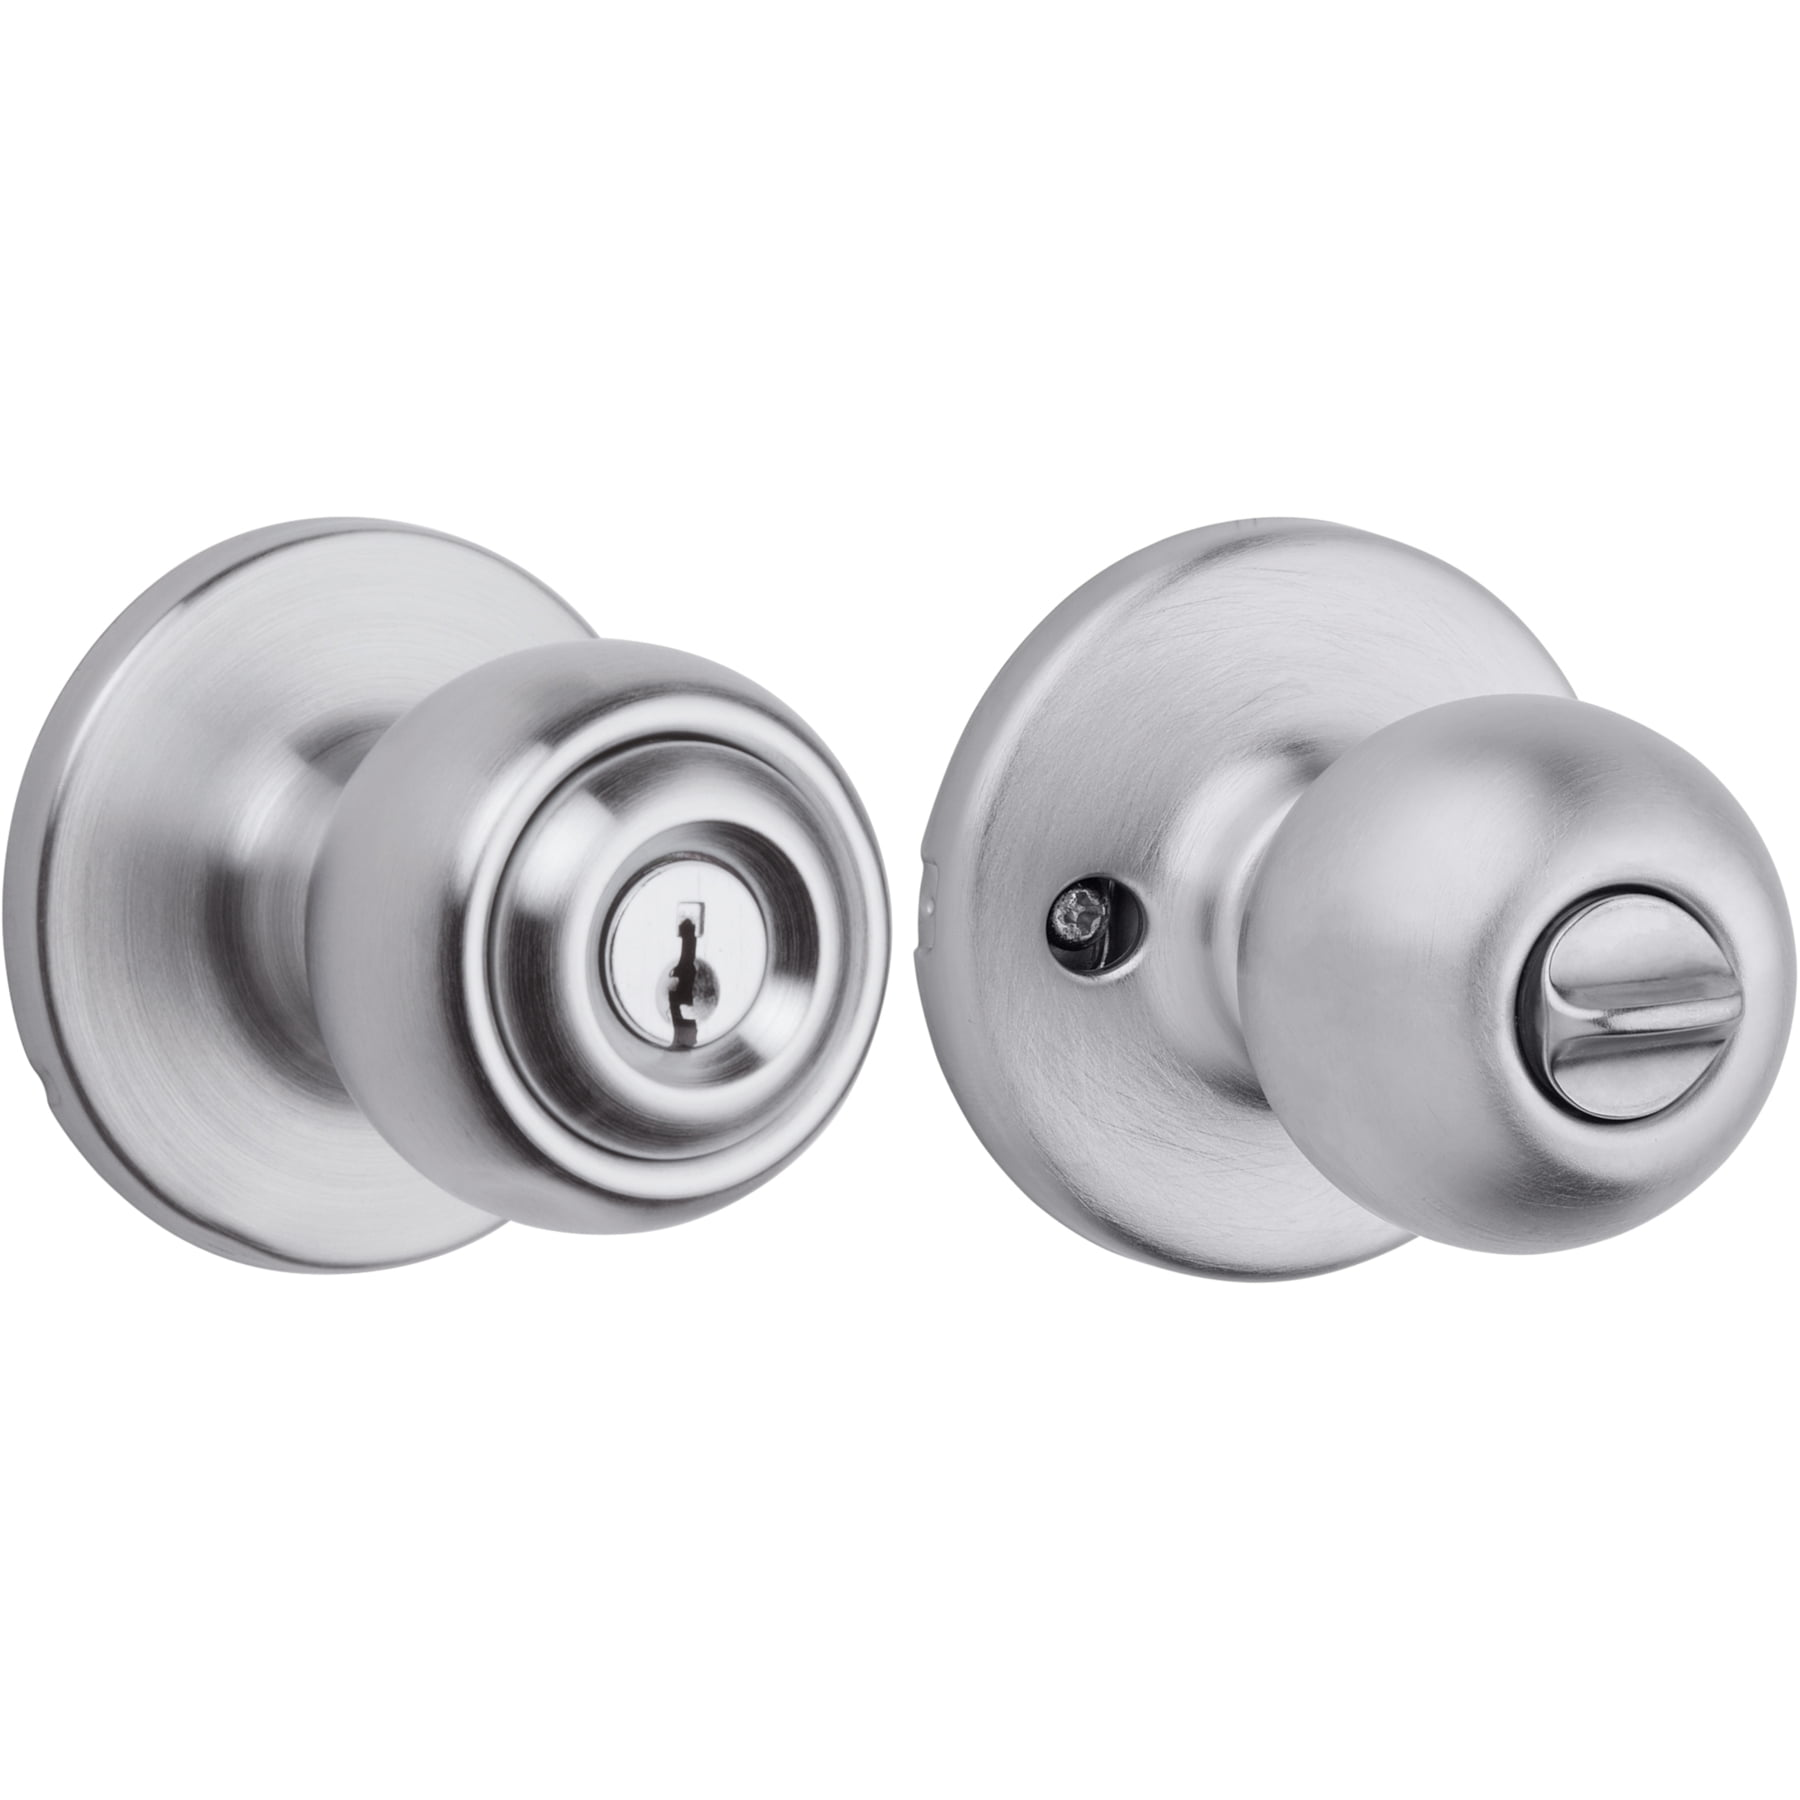 Kwikset Polo Satin Nickel Keyed Entry Door Knob